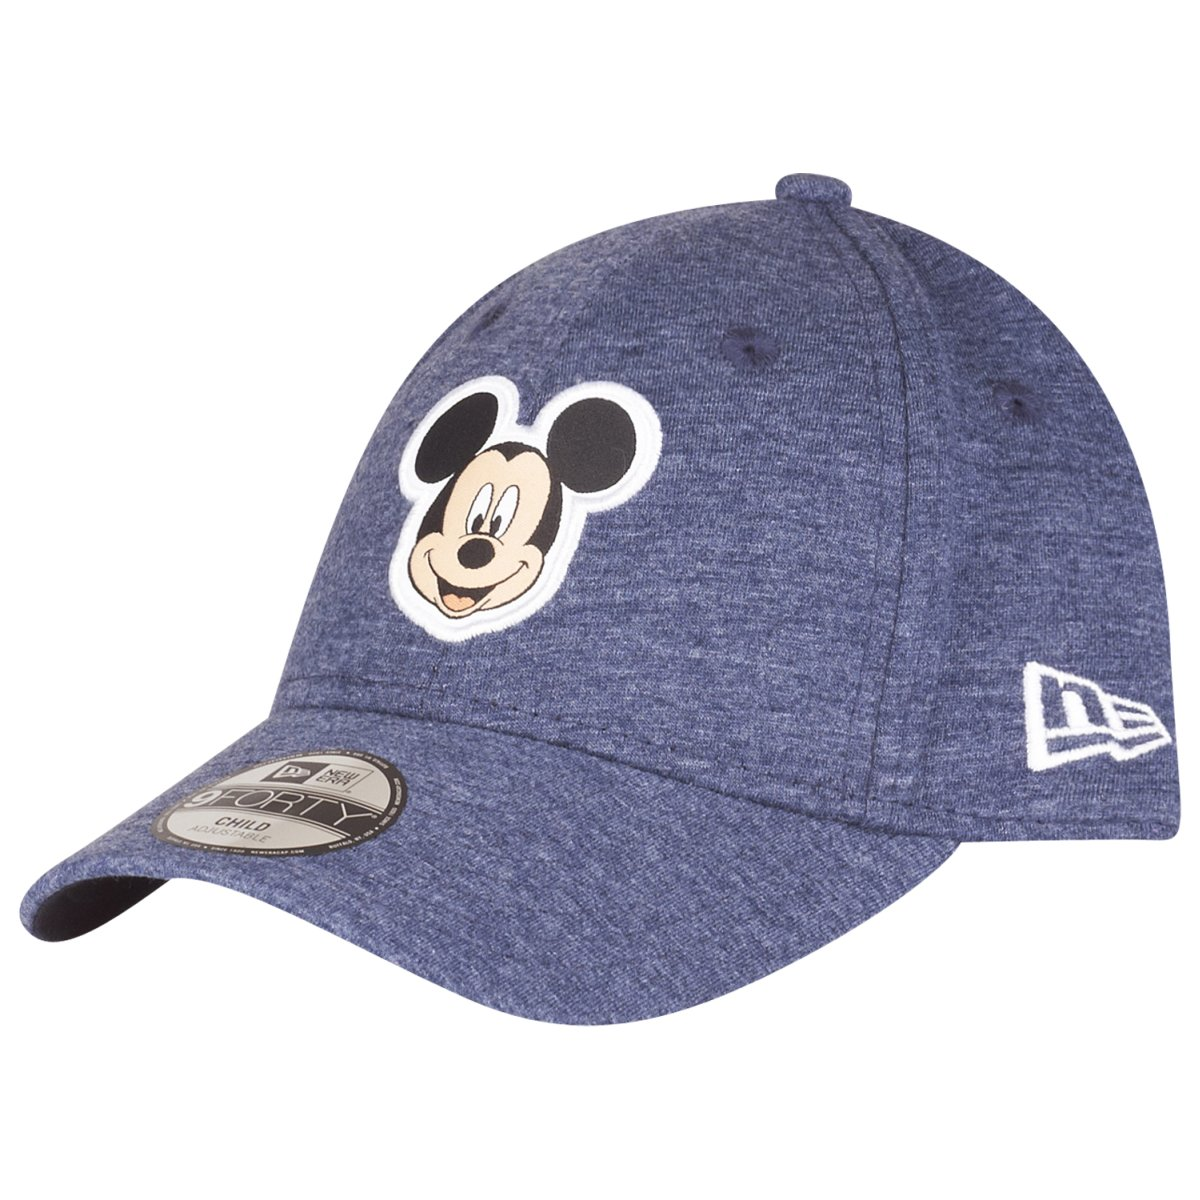 New Era 9Forty KIDS Cap - JERSEY Mickey Mouse navy  d0df3ad2e33